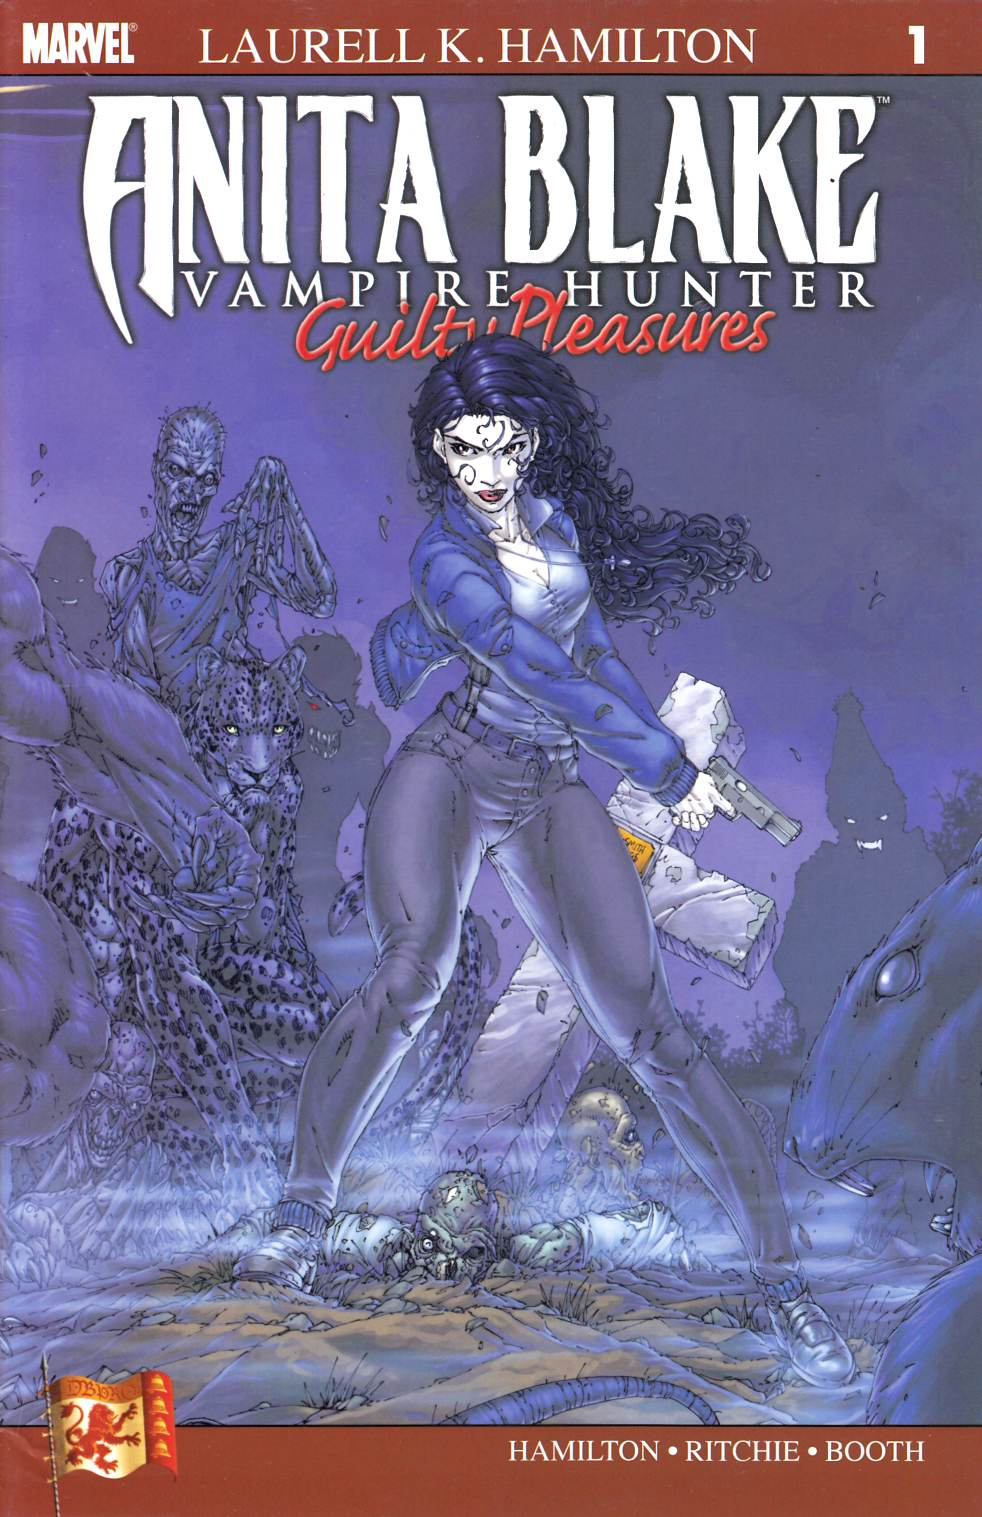 Anita Blake Vampire Hunter Guilty Pleasures #1 Fine (6.0) [Marvel Comic]